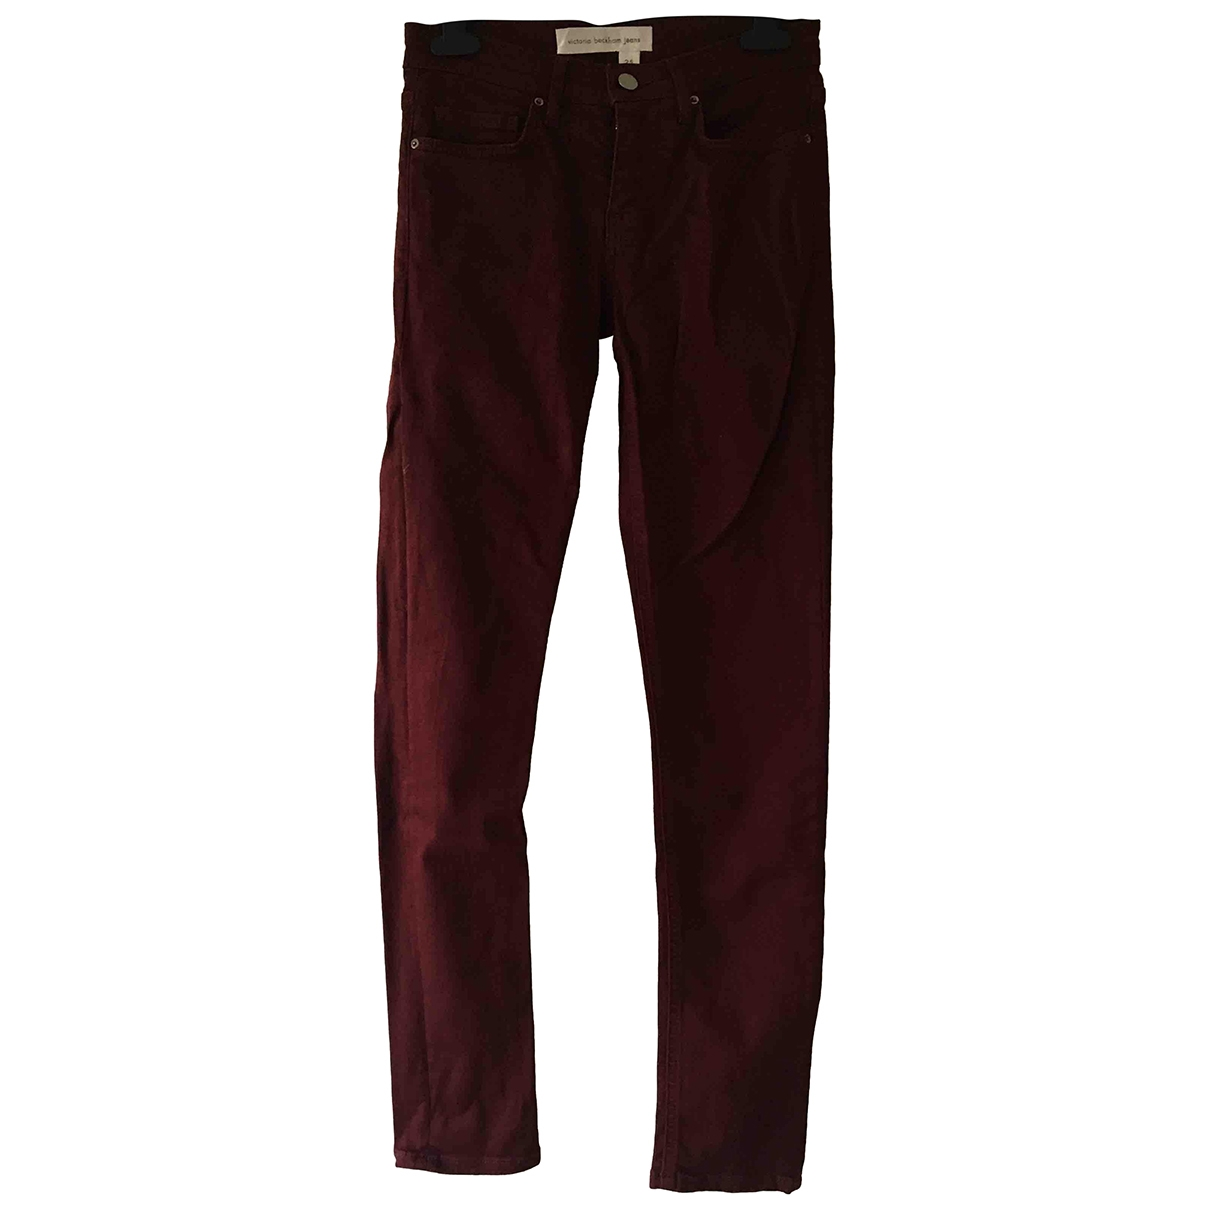 Victoria Beckham \N Burgundy Cotton - elasthane Jeans for Women 25 US